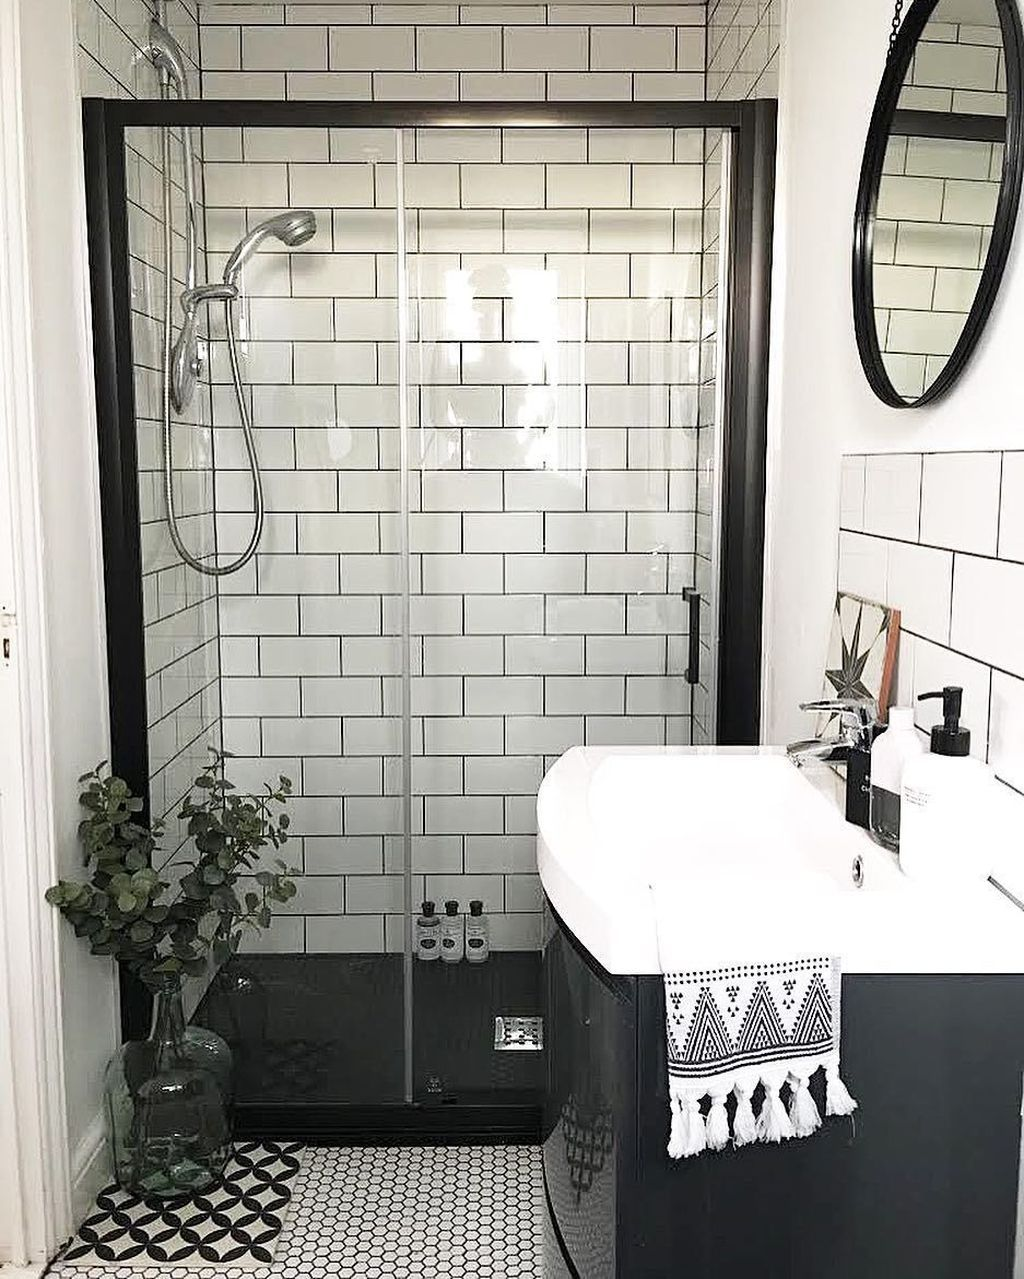 39 Awesome Small Bathroom Remodel Ideas On A Budget Bathrooms Remodel Small Bathroom Remodel Bathroom Remodel Master